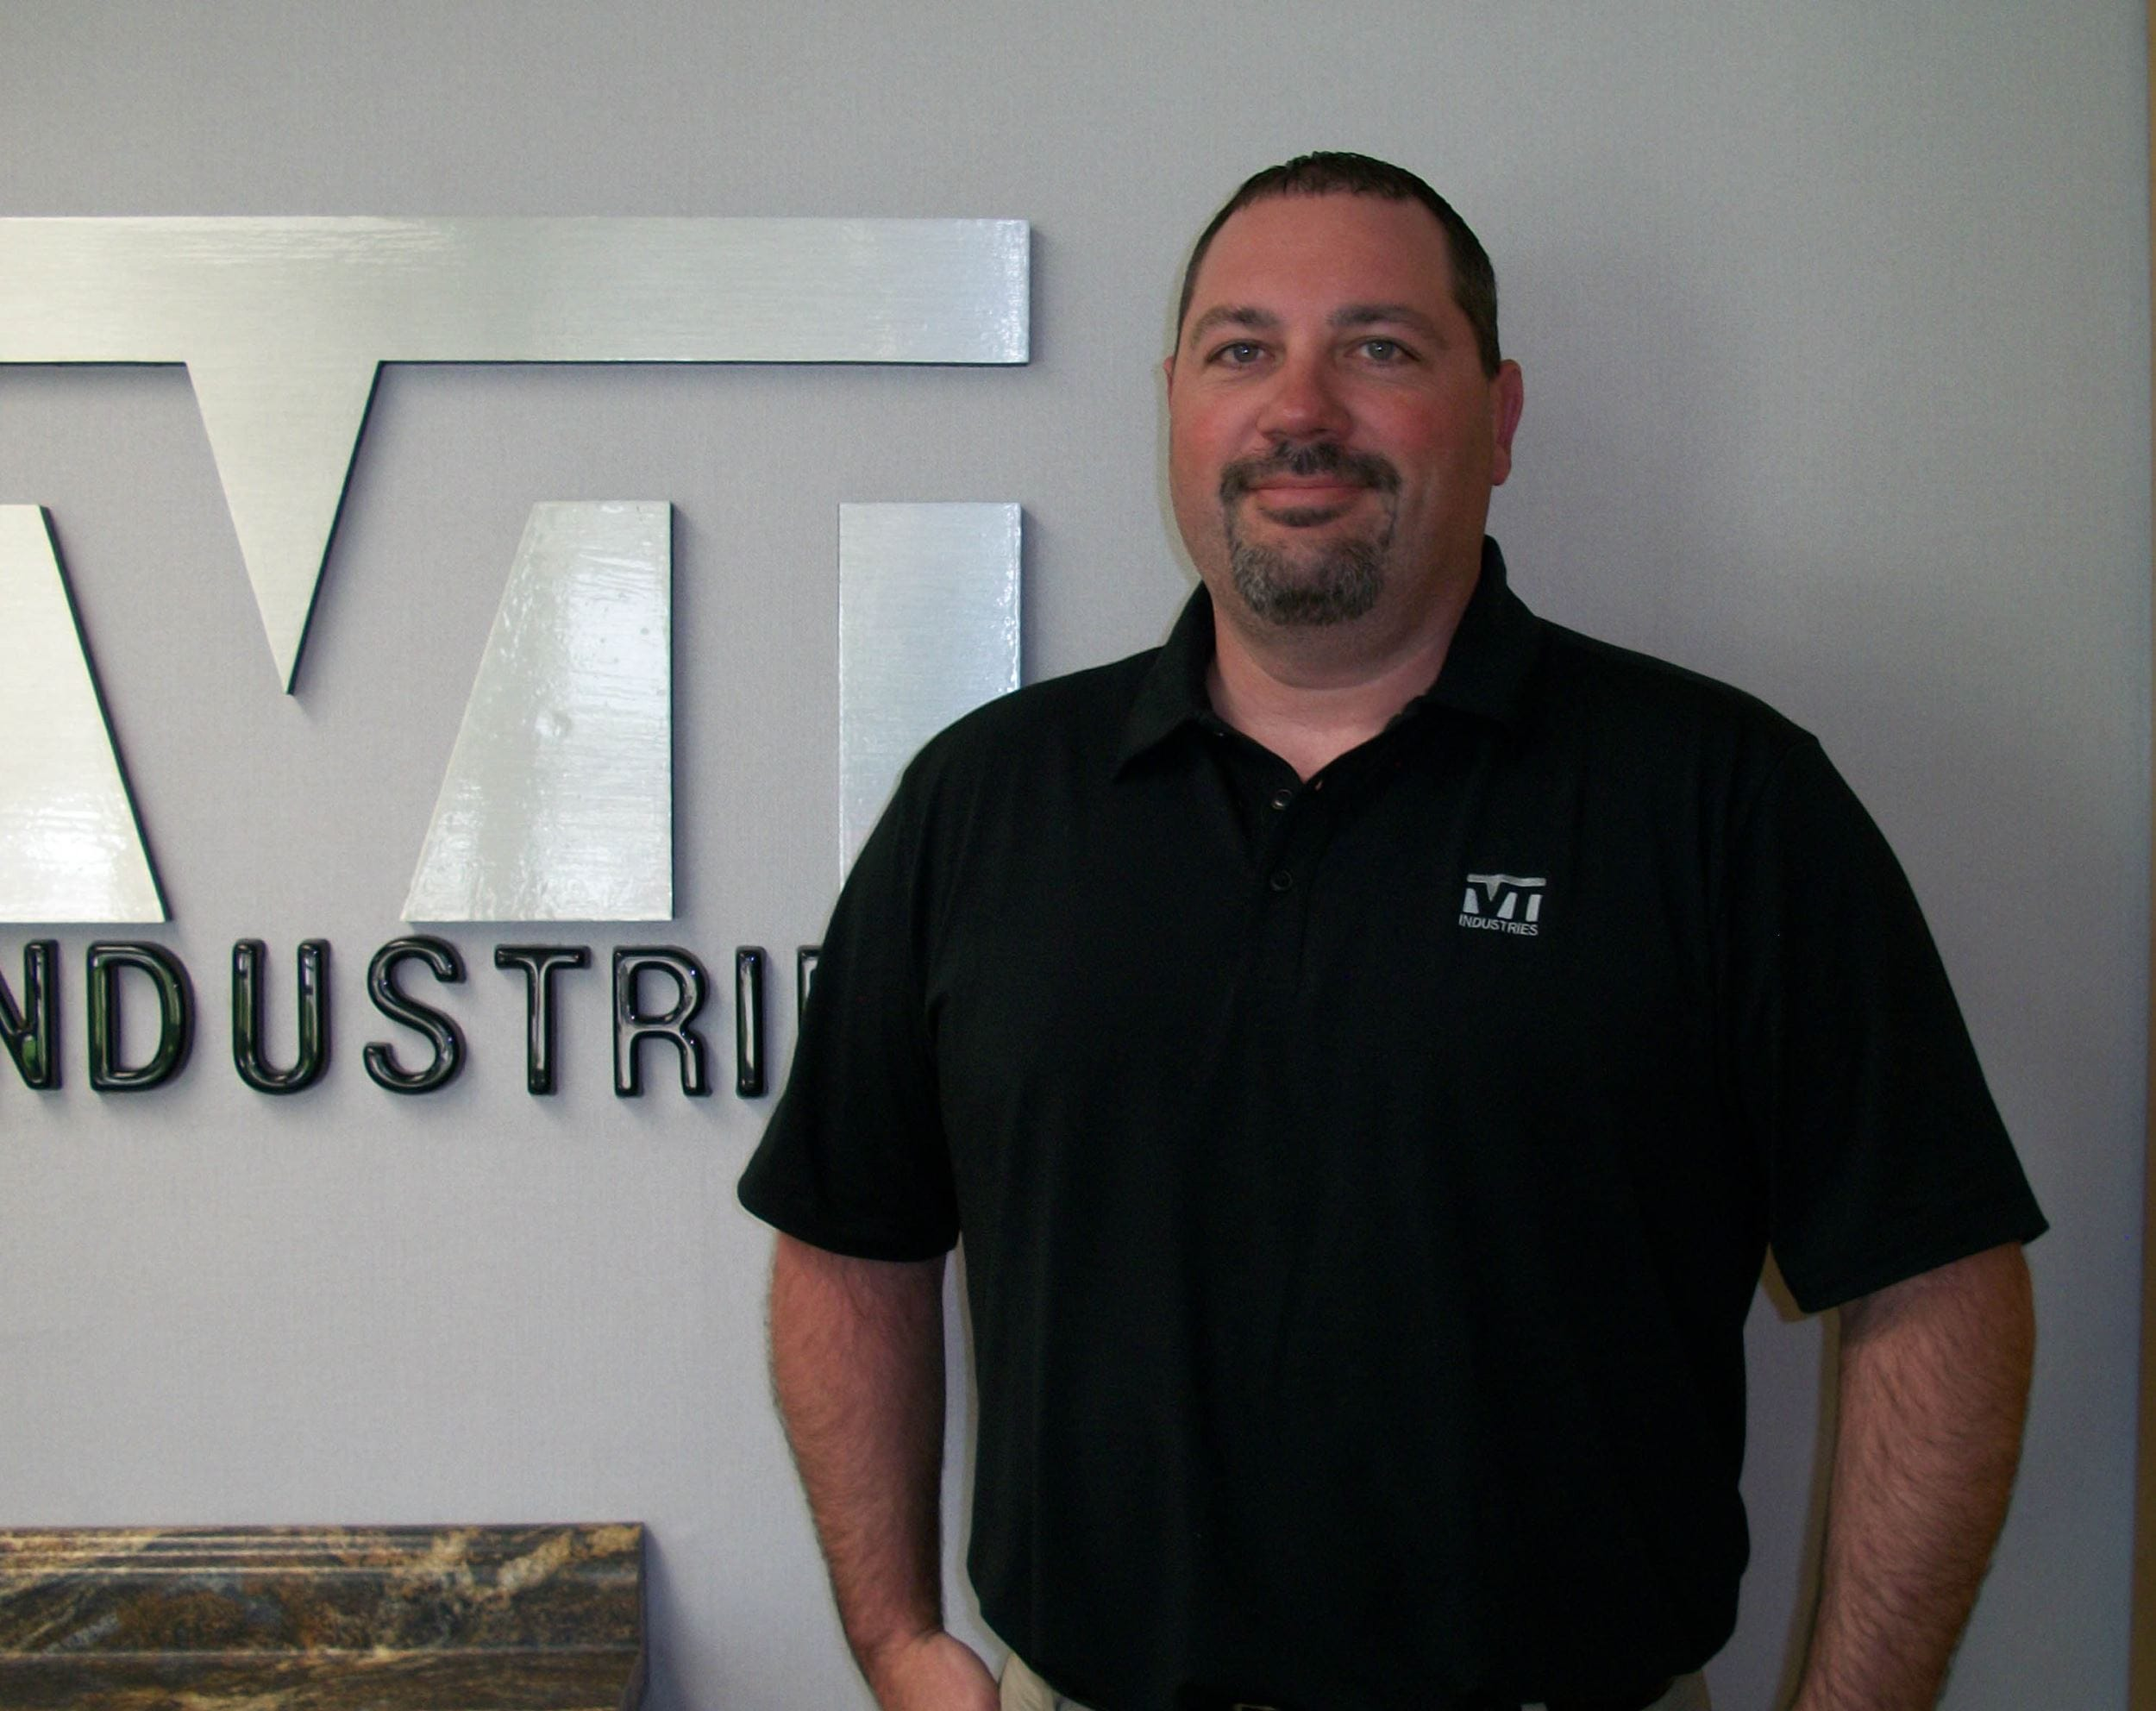 Inside Sales & Customer Service Manager, Chris Grothe